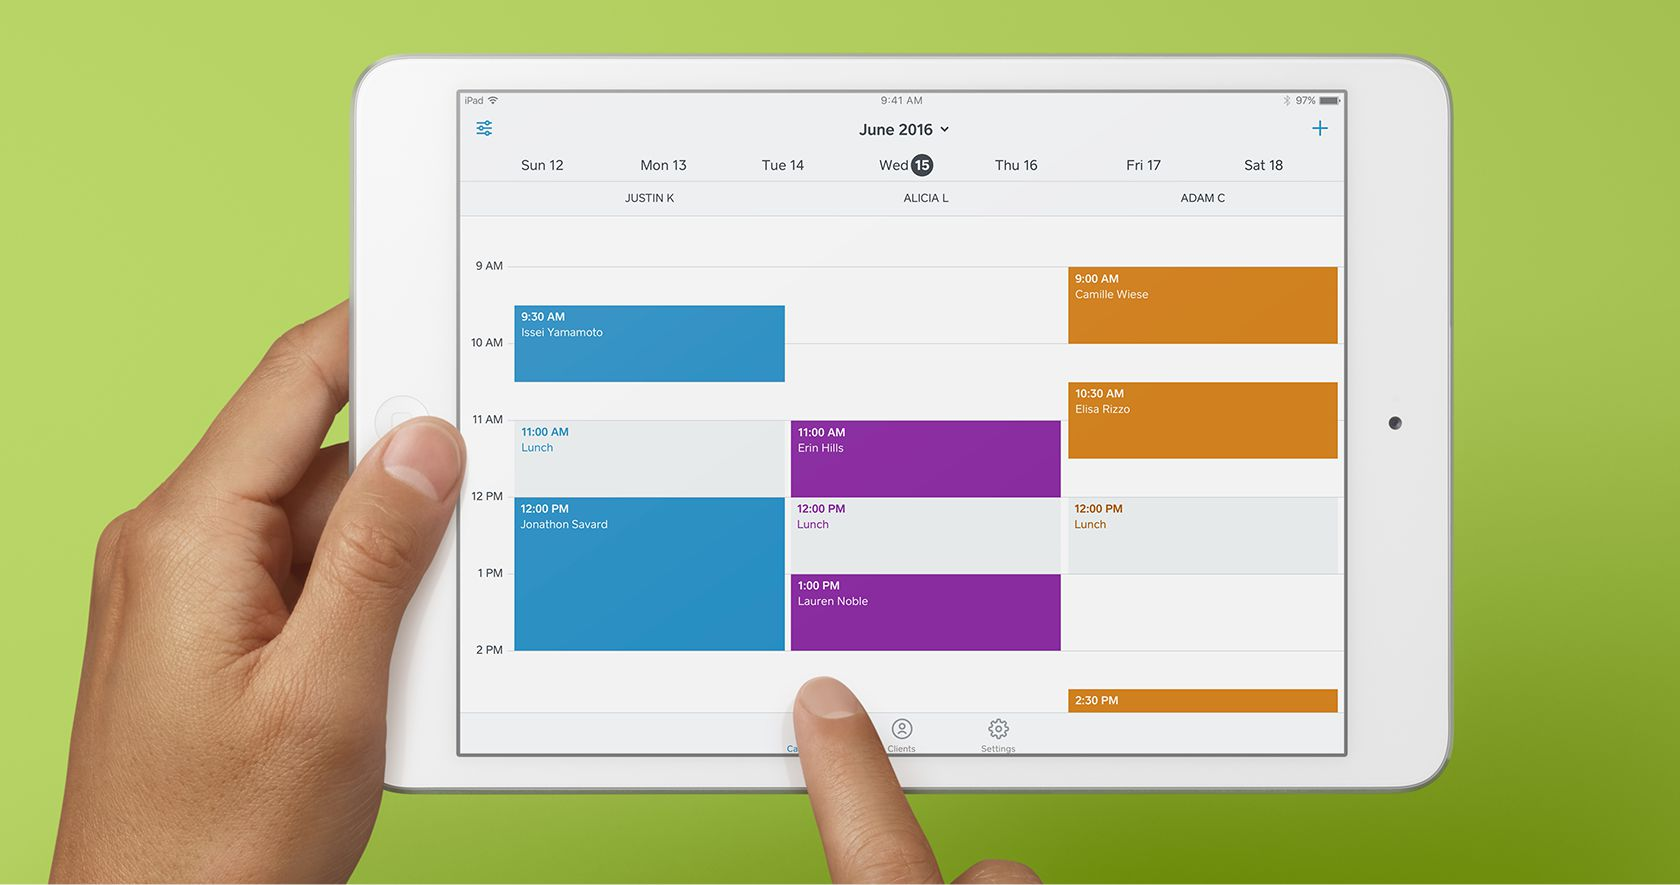 Image of iPad with Square Appointments calendar interface